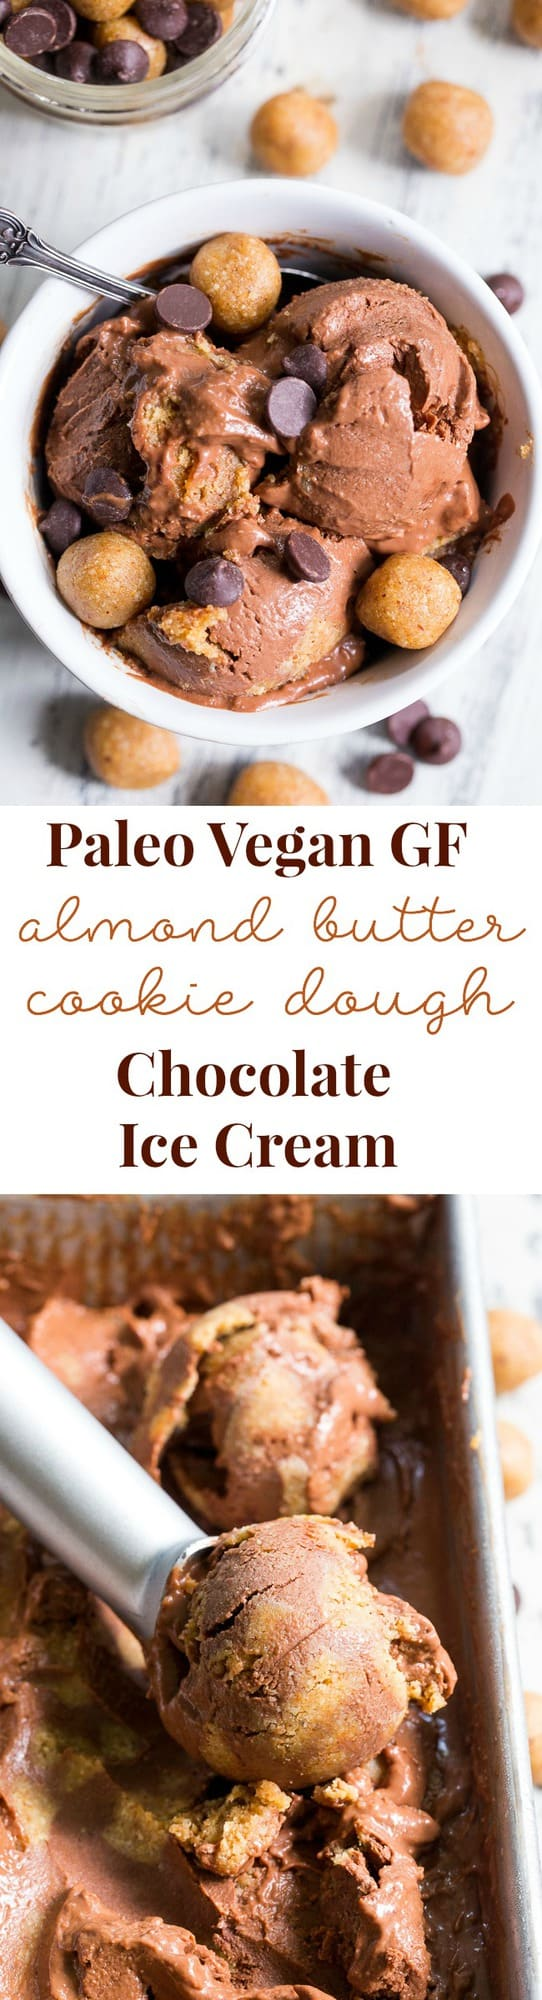 This paleo and vegan chocolate almond butter cookie dough ice cream is rich, creamy and super easy to make!  This no-churn chocolate ice cream is packed with grain free and paleo almond butter cookie dough chunks throughout.  It's family approved and irresistibly chocolatey!